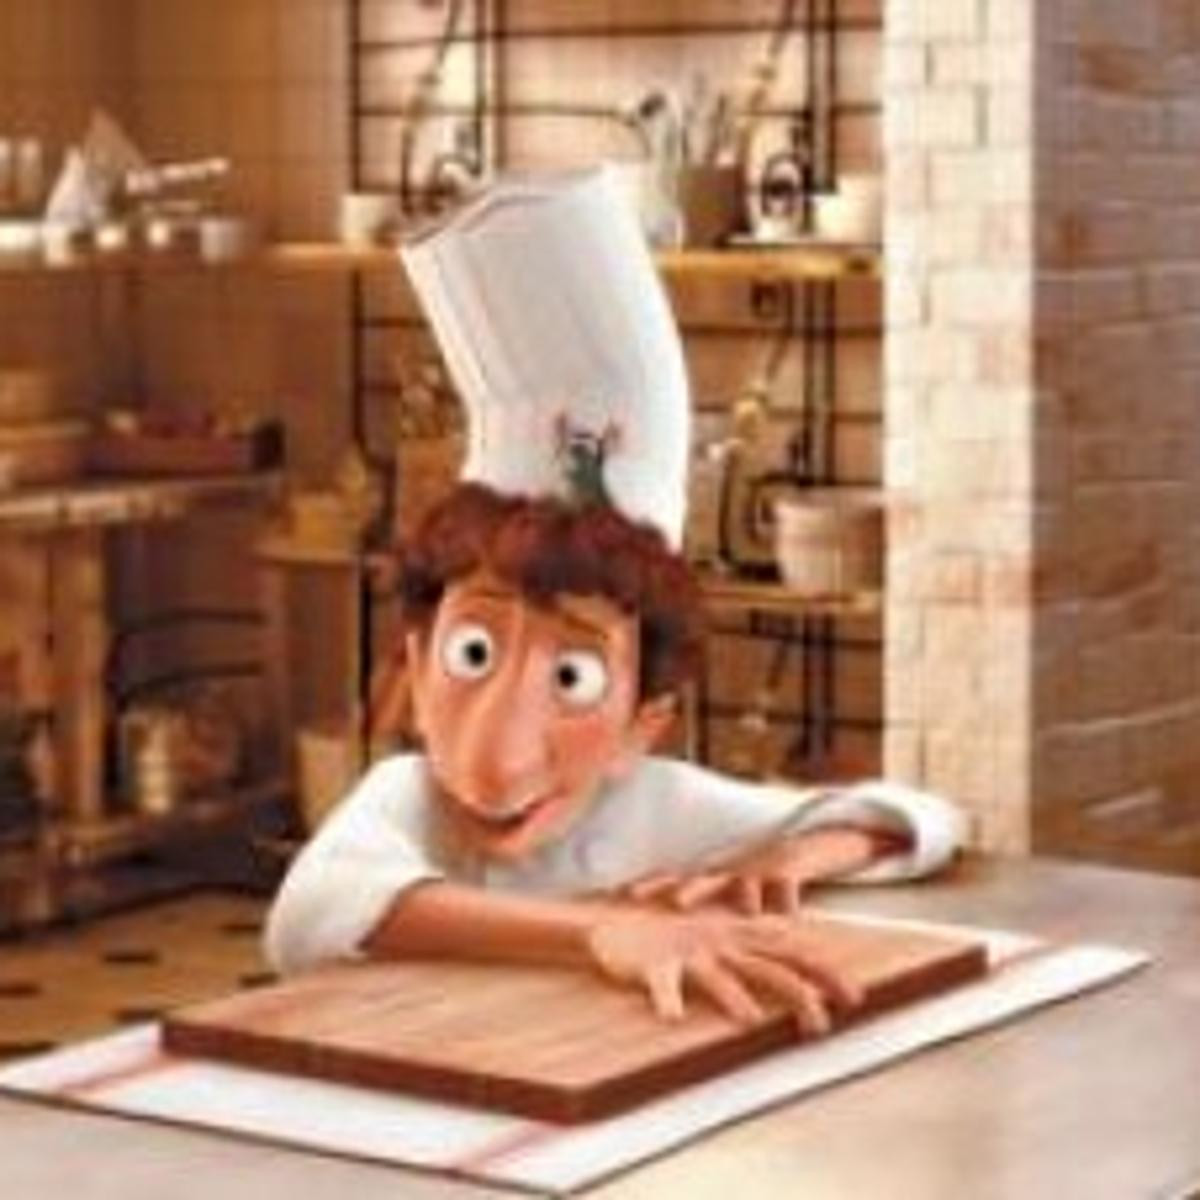 Ratatouille Is A Surprisingly Sophisticated Hollywood Dish The Entertainer Gazettetimes Com